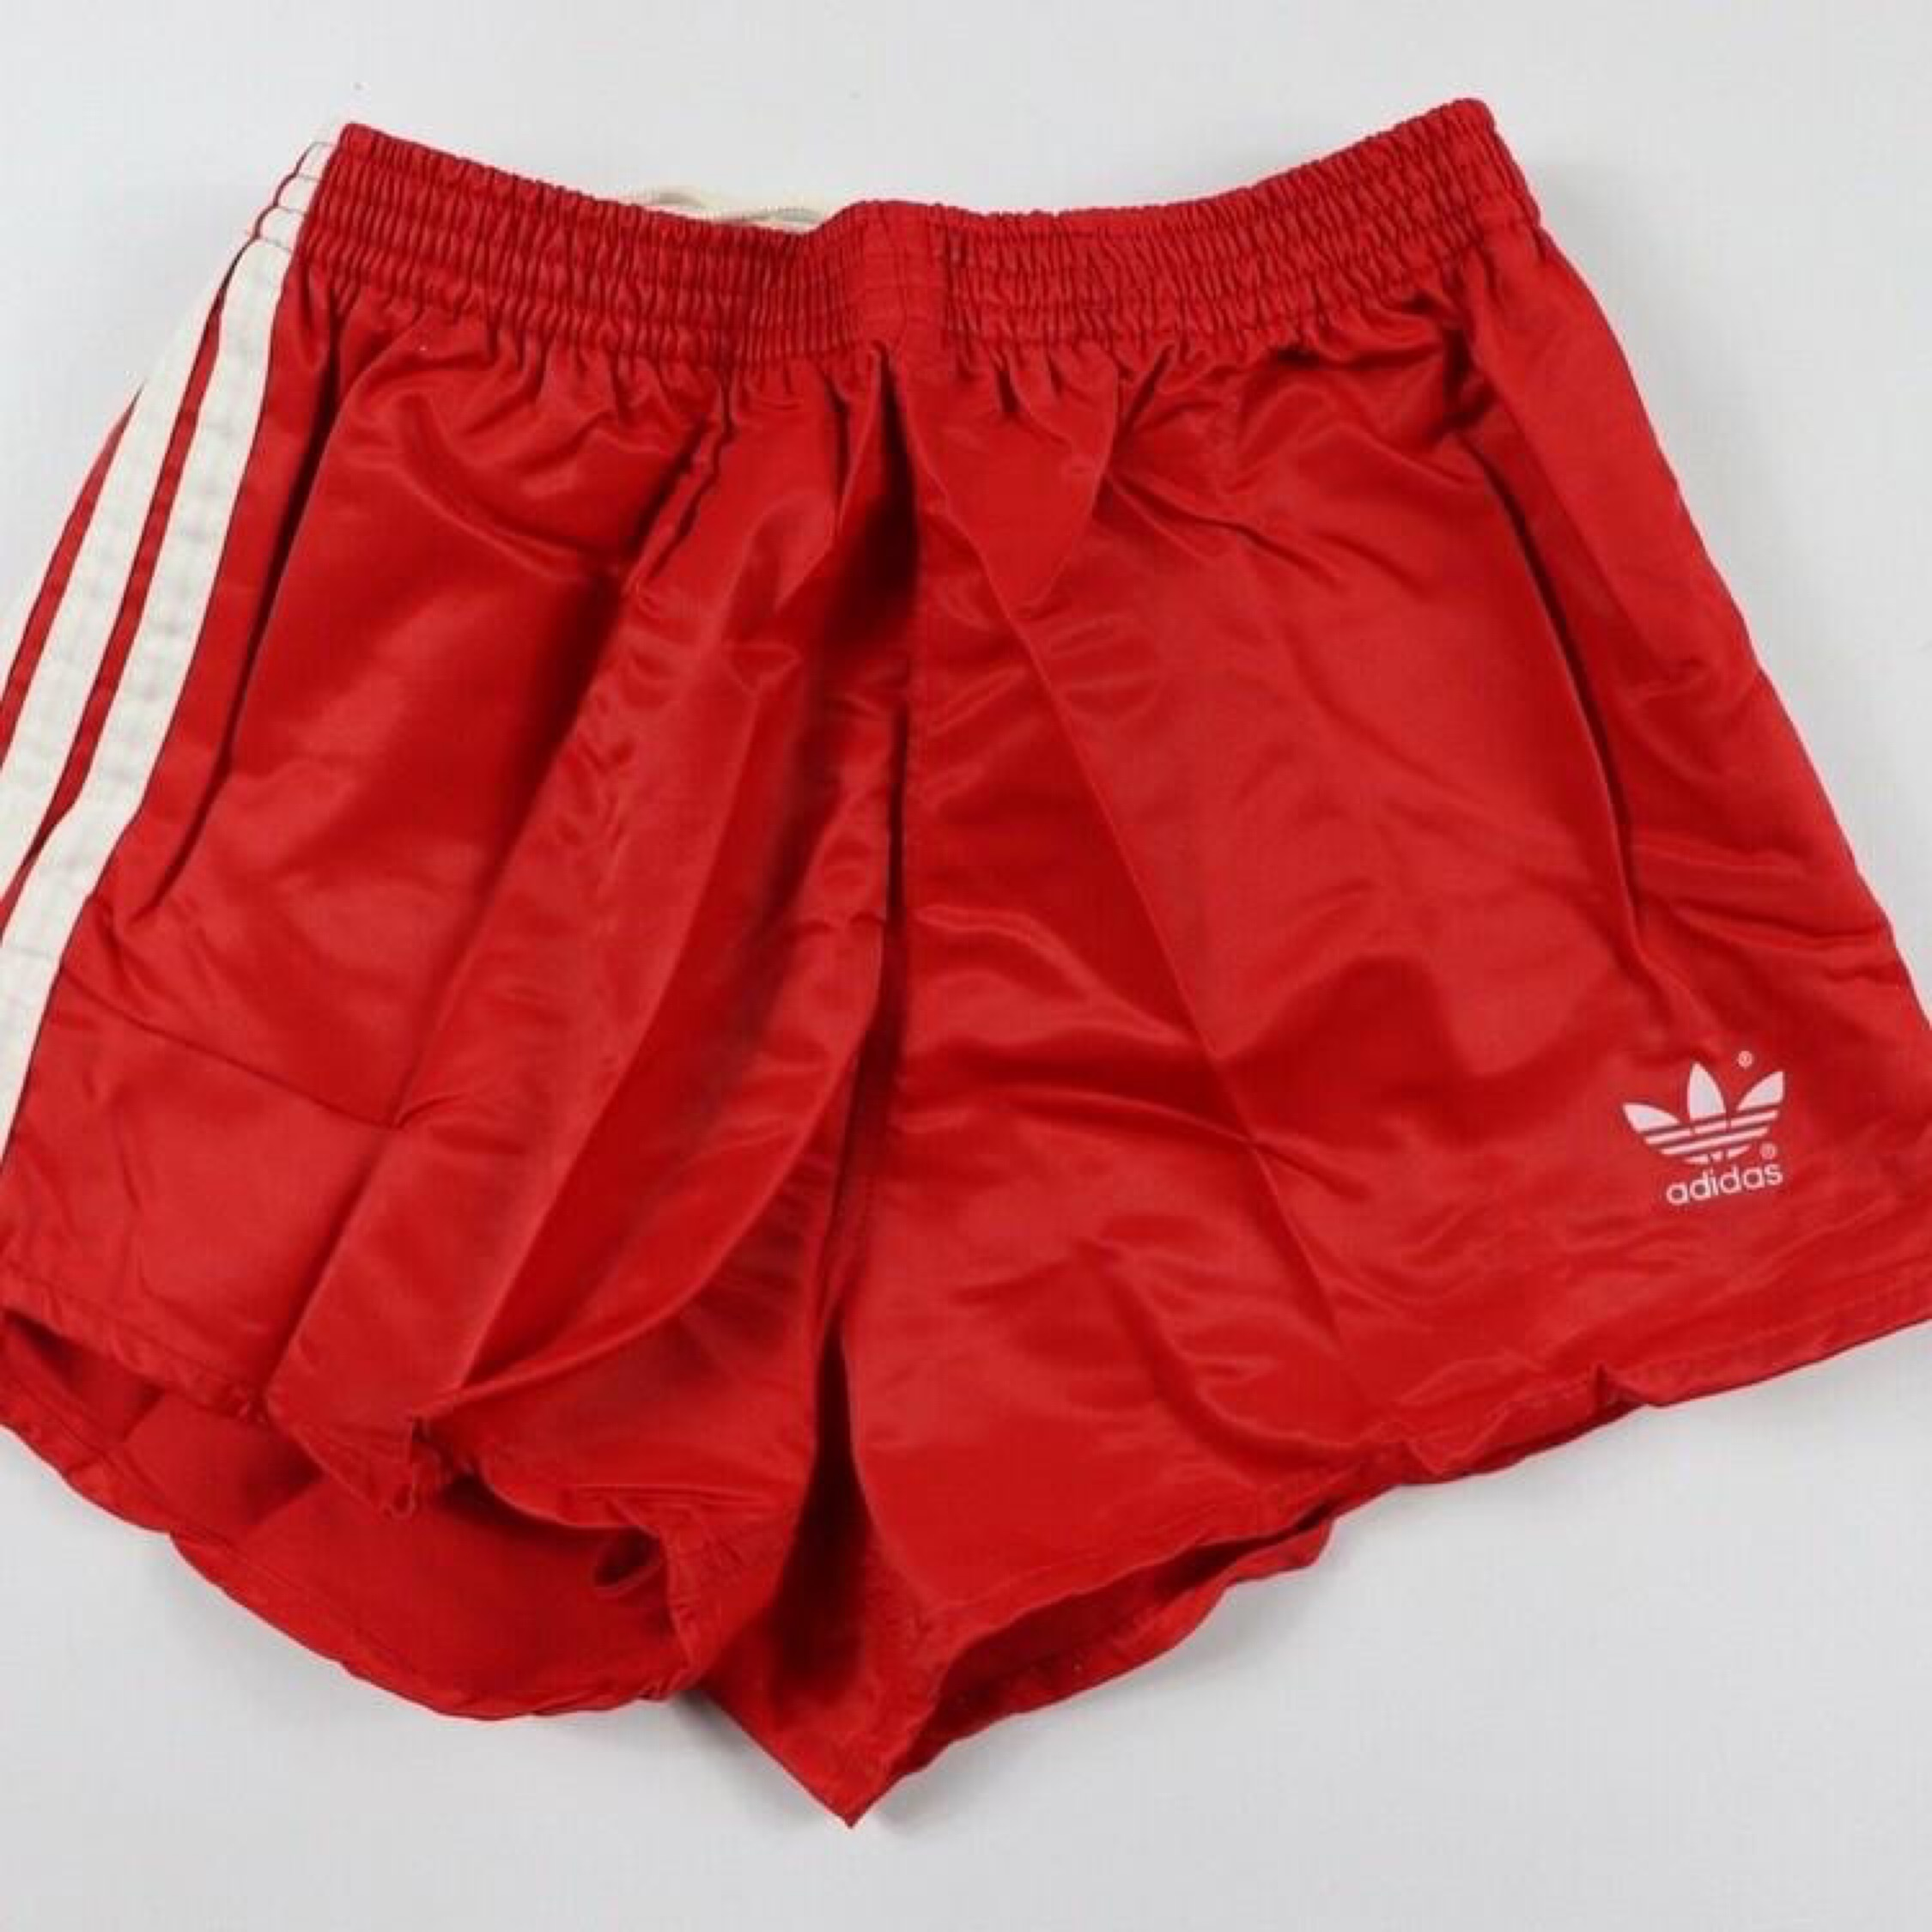 Vintage Adidas Spellout Soccer Shorts